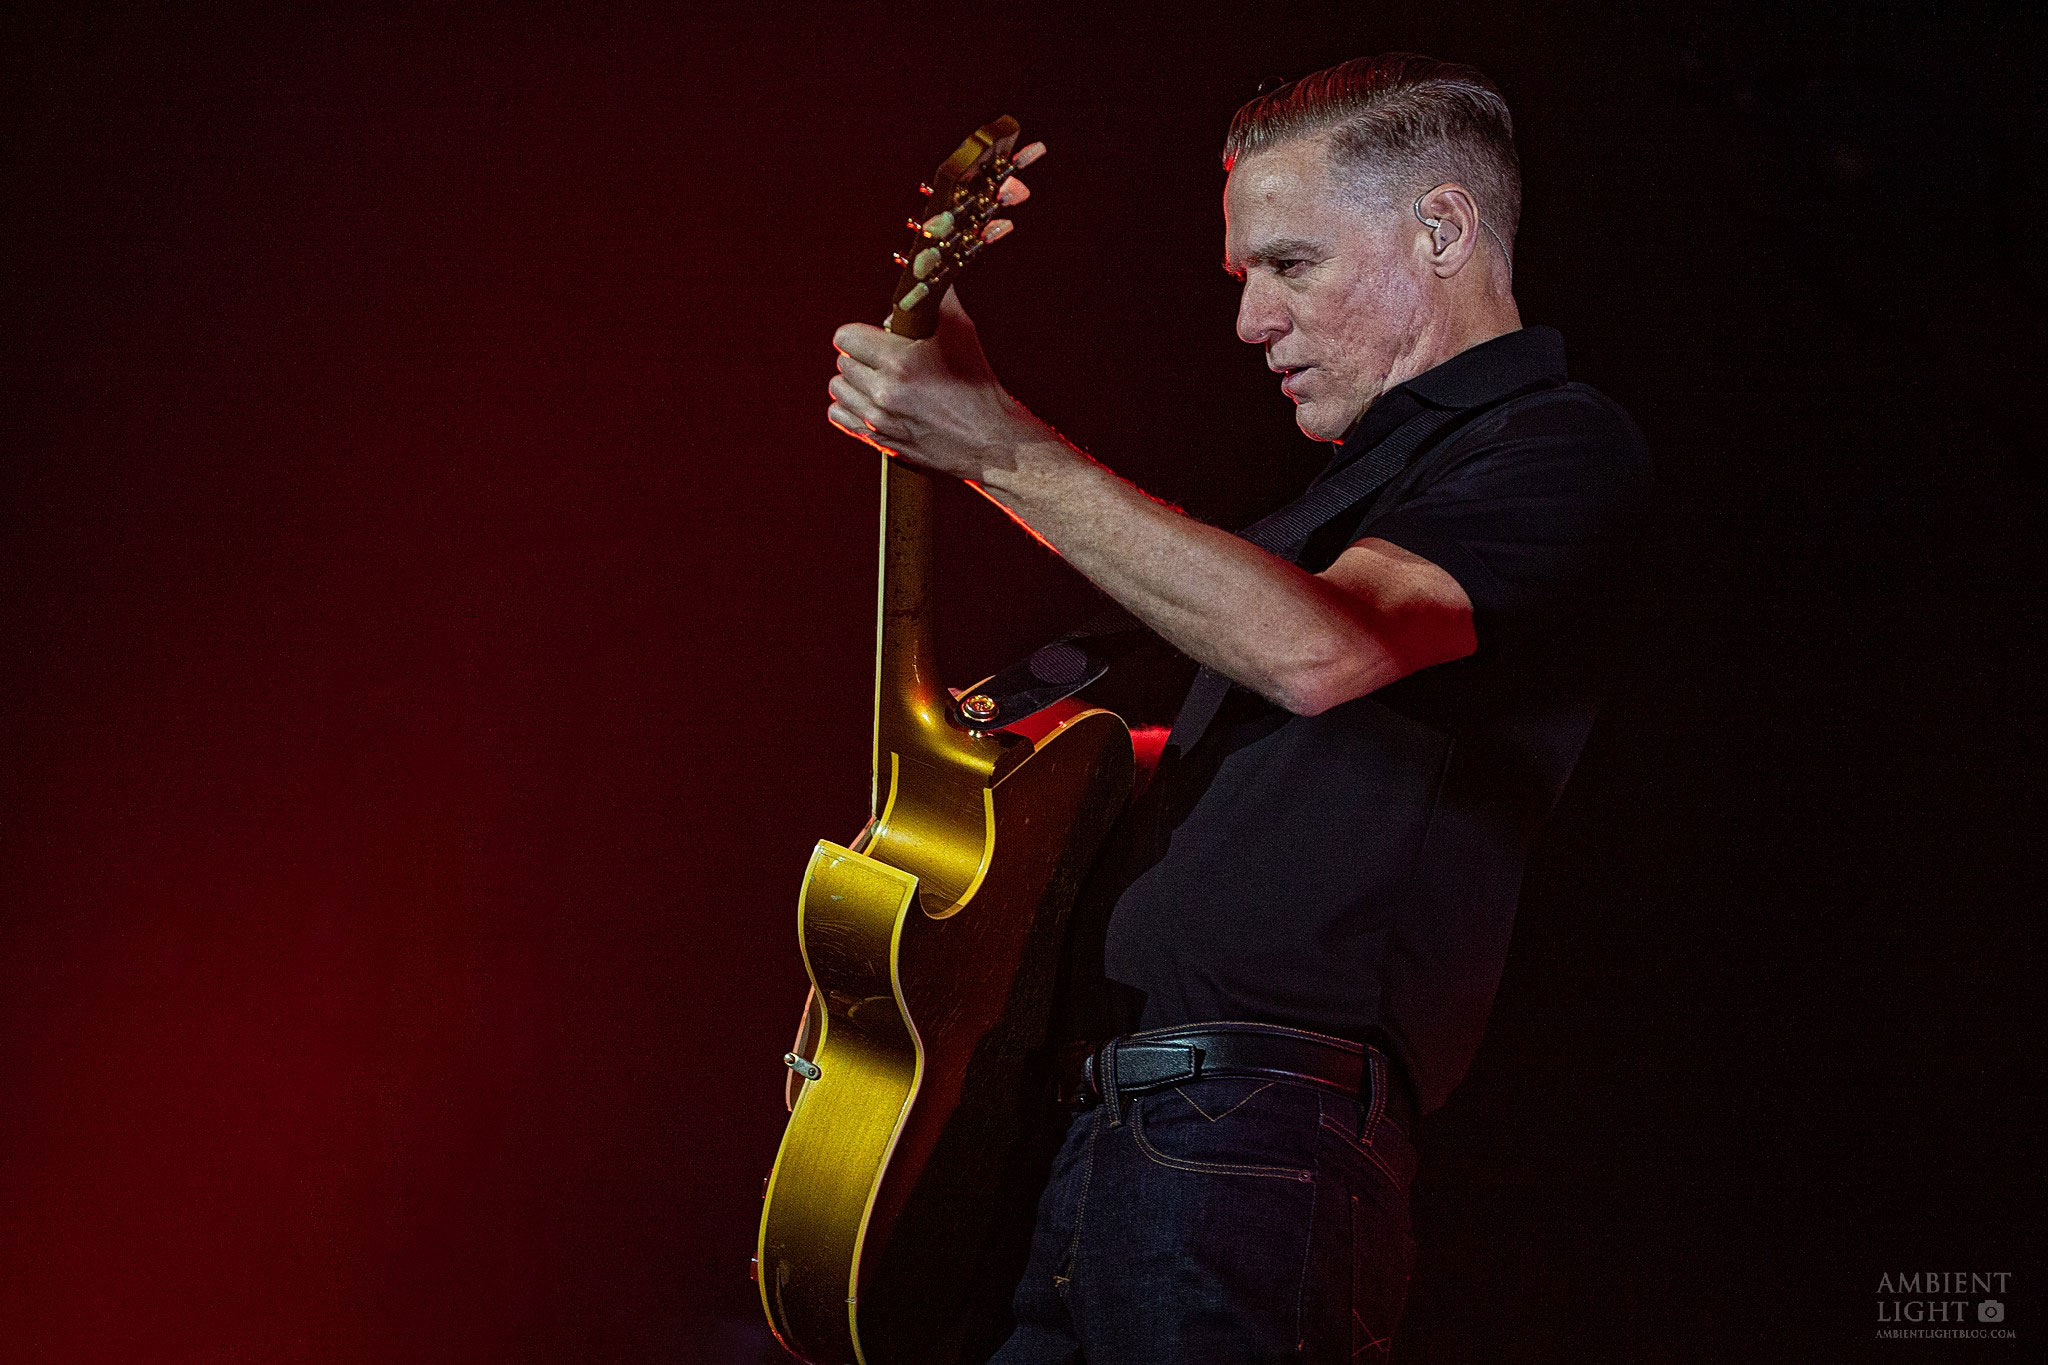 concert review bryan adams auckland new zealand 2019. Black Bedroom Furniture Sets. Home Design Ideas